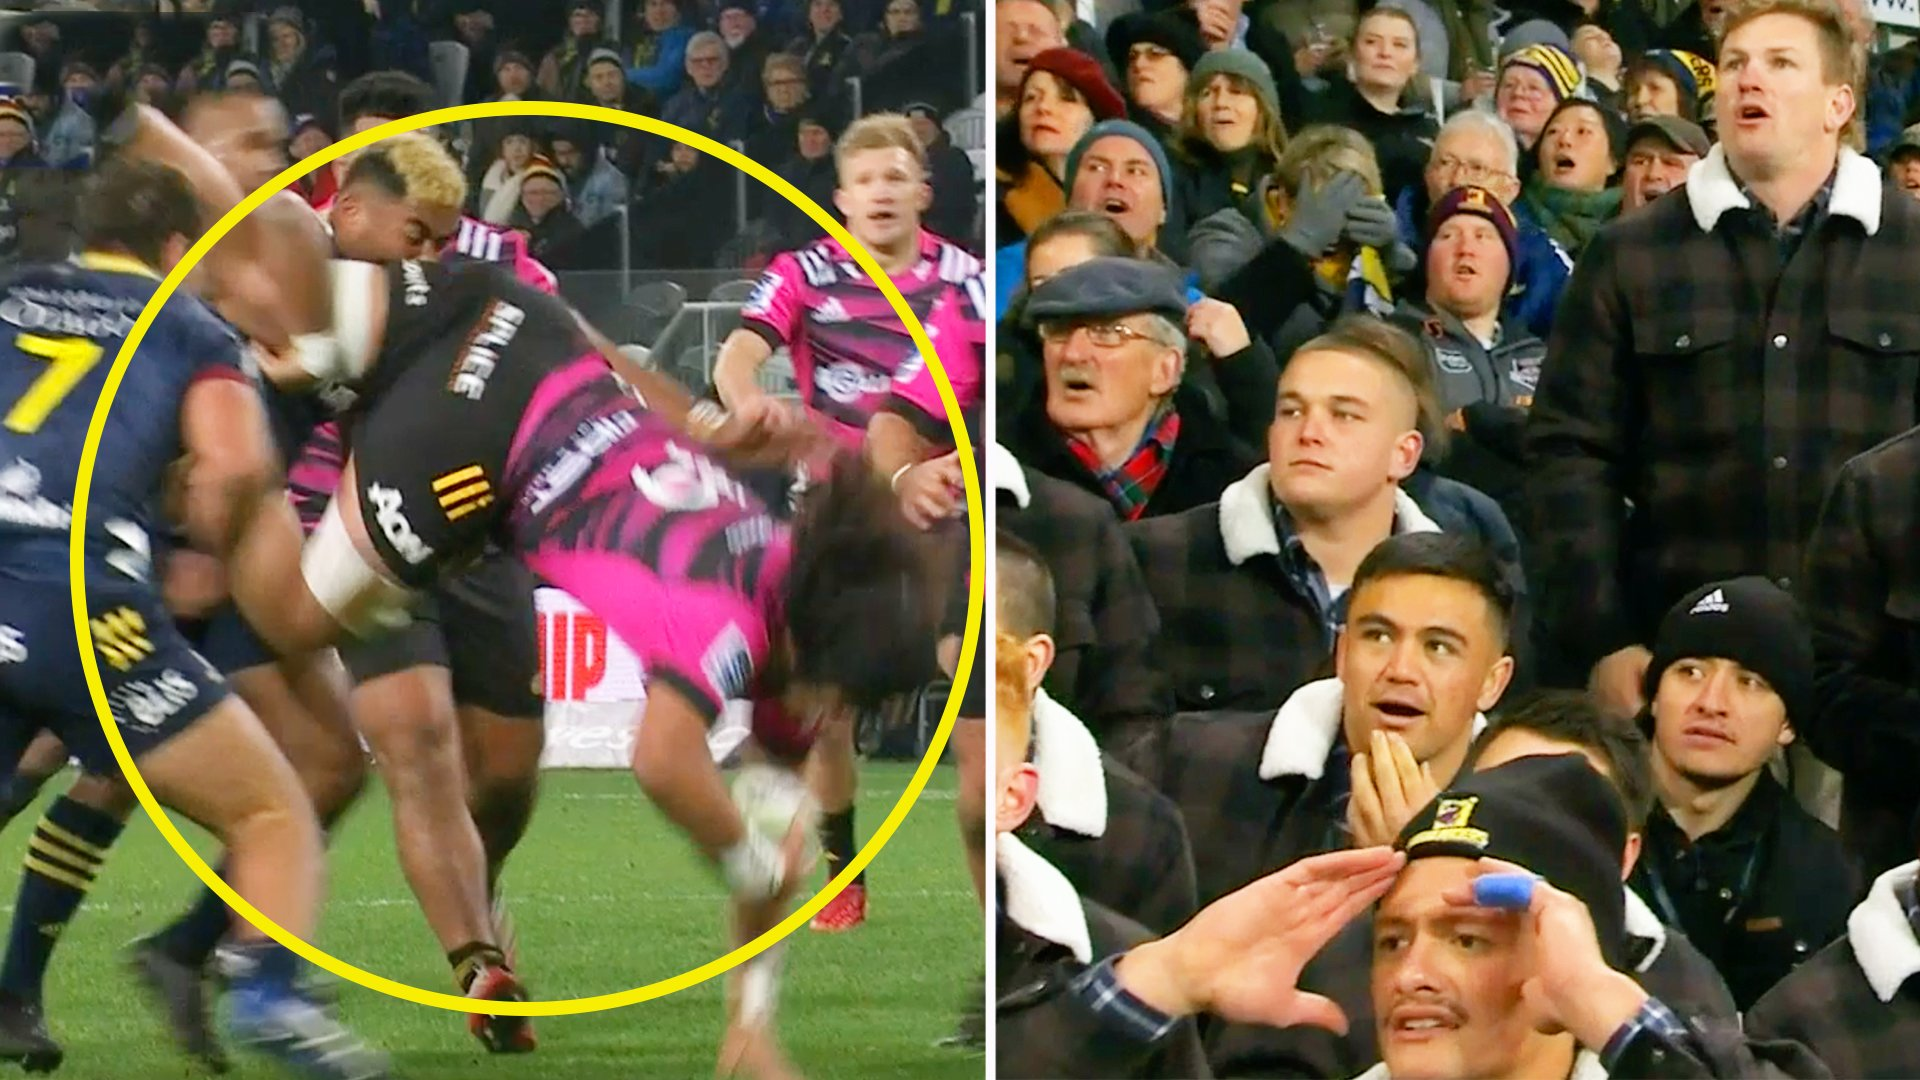 Packed out NZ crowd rocked by shocking piece of foul play in Super Rugby opener